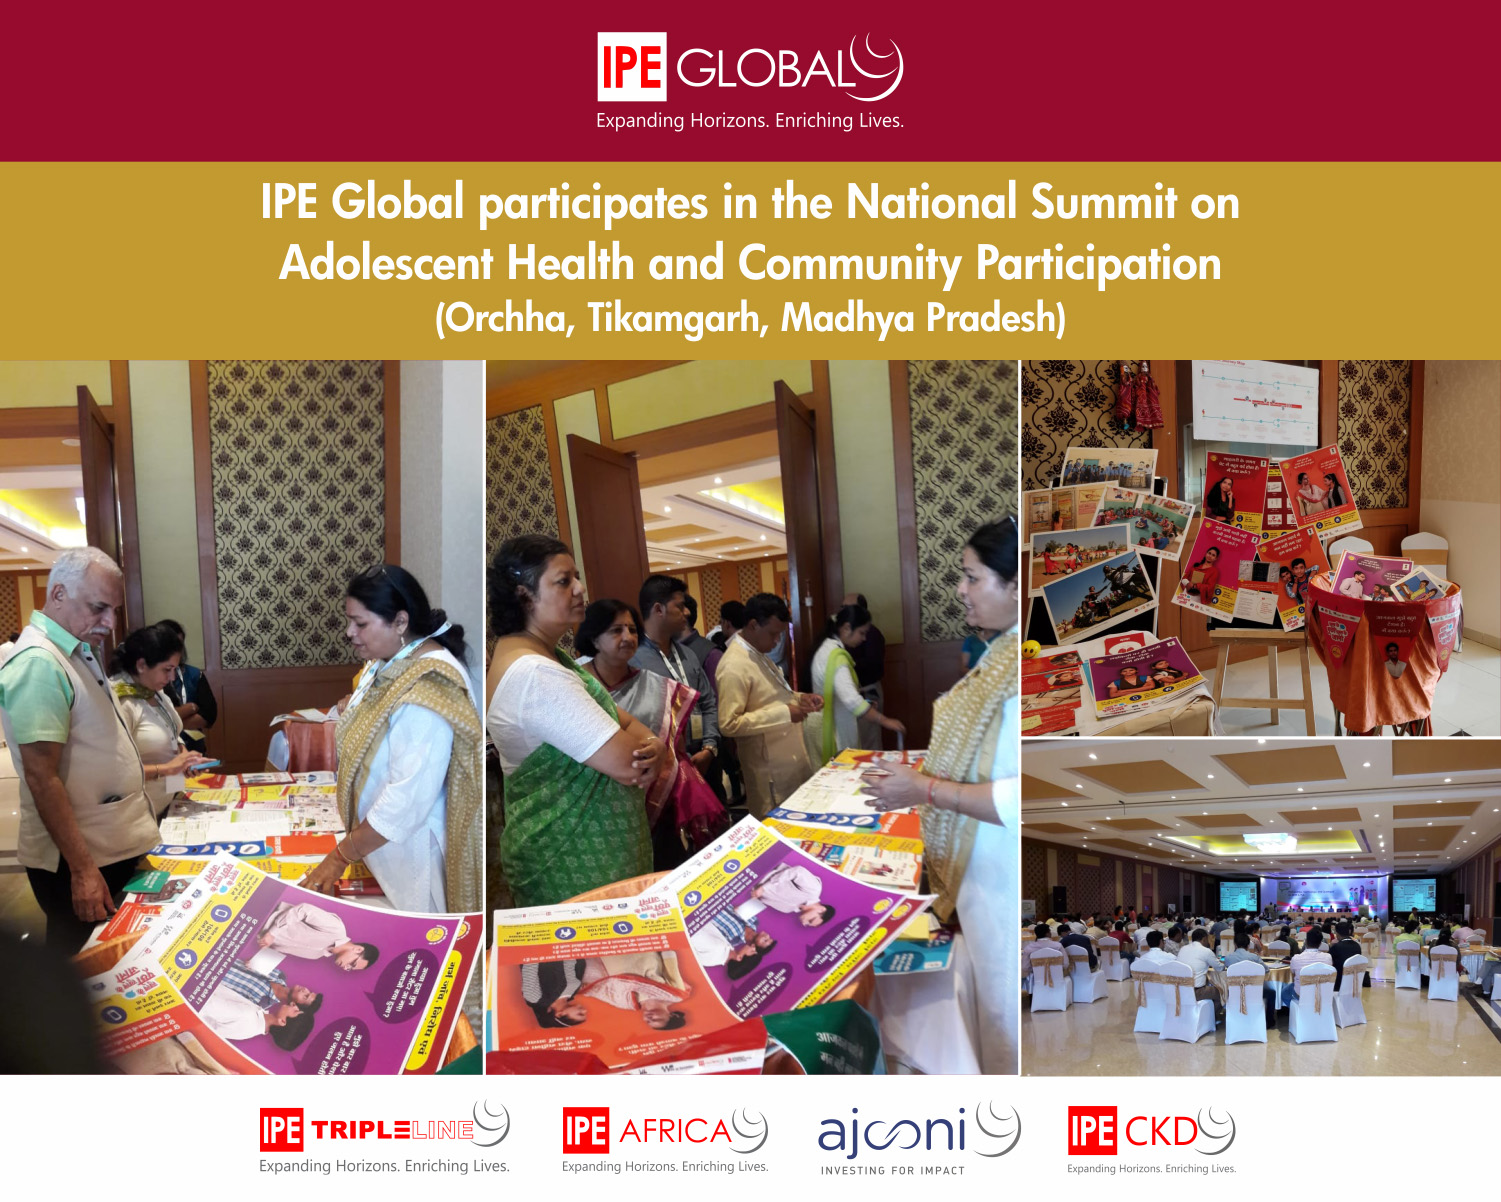 IPE Global participates in the National Summit on Adolescent Health and Community Participation